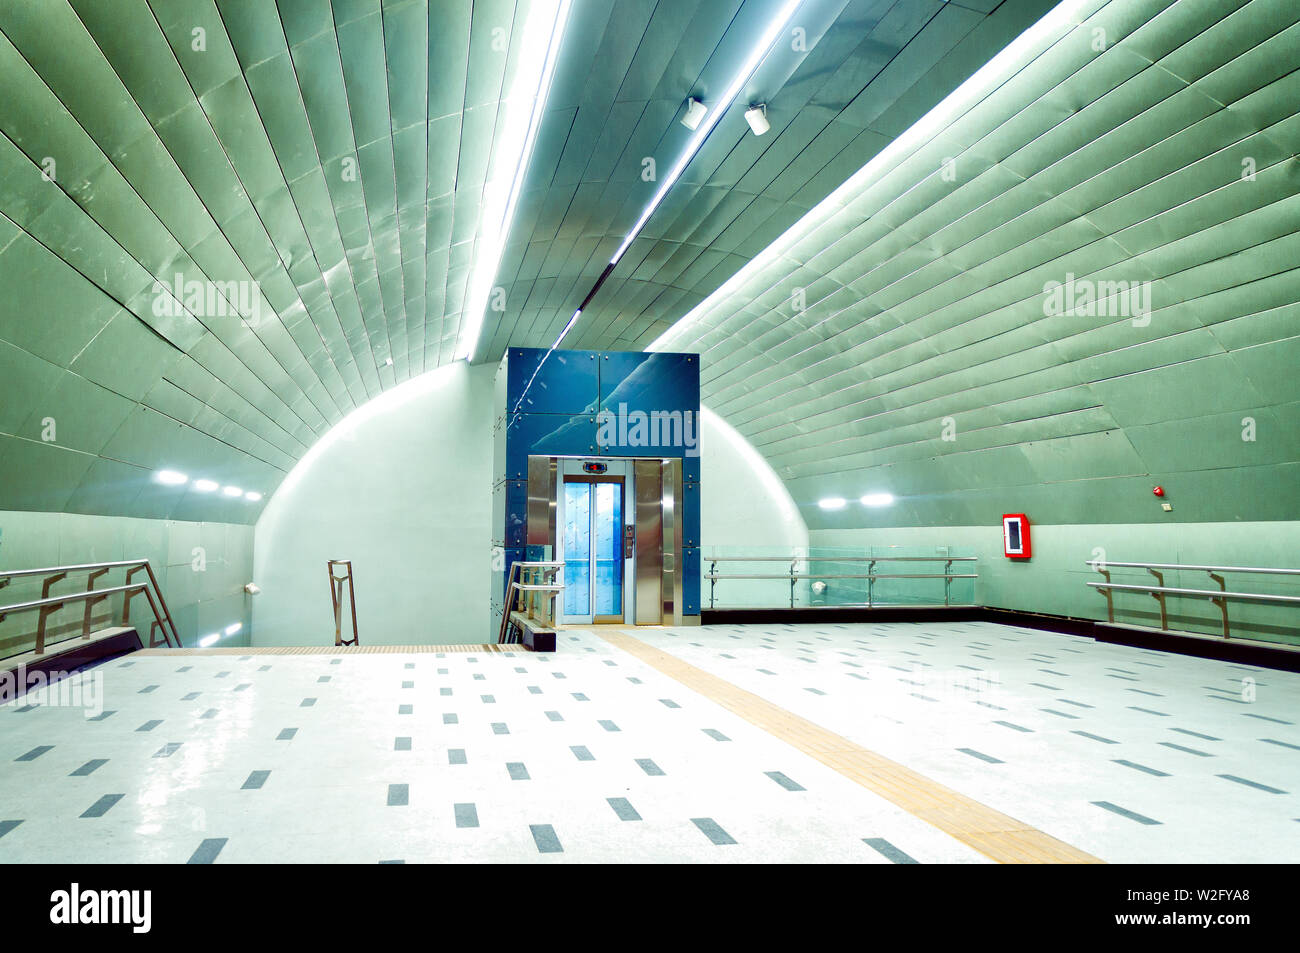 SANTIAGO, CHILE - NOVEMBER 2018: Conchalí station of Line 3 before its inauguration - Stock Image